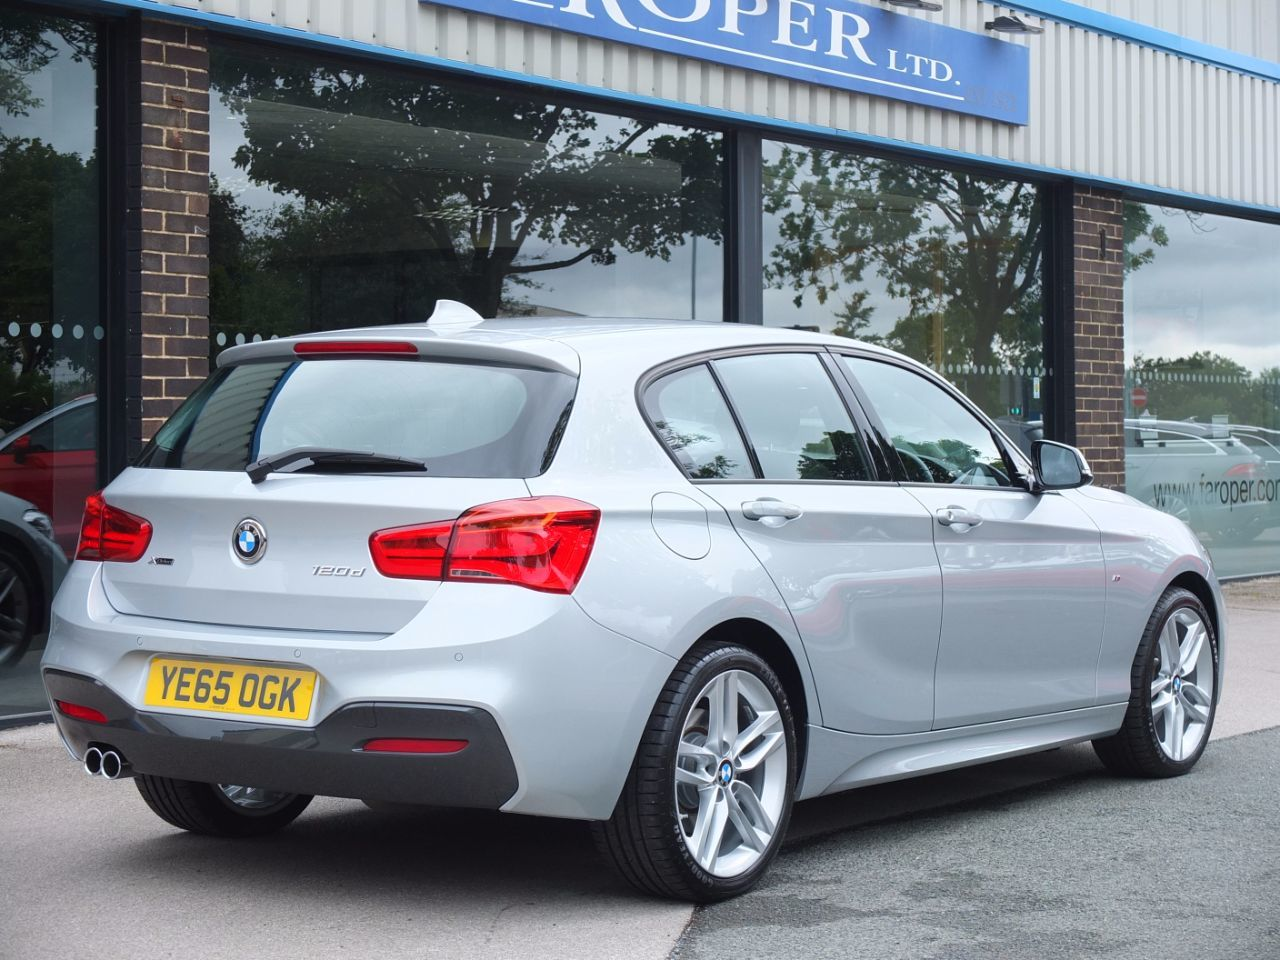 used bmw 1 series 120d xdrive m sport 5 door auto for sale. Black Bedroom Furniture Sets. Home Design Ideas